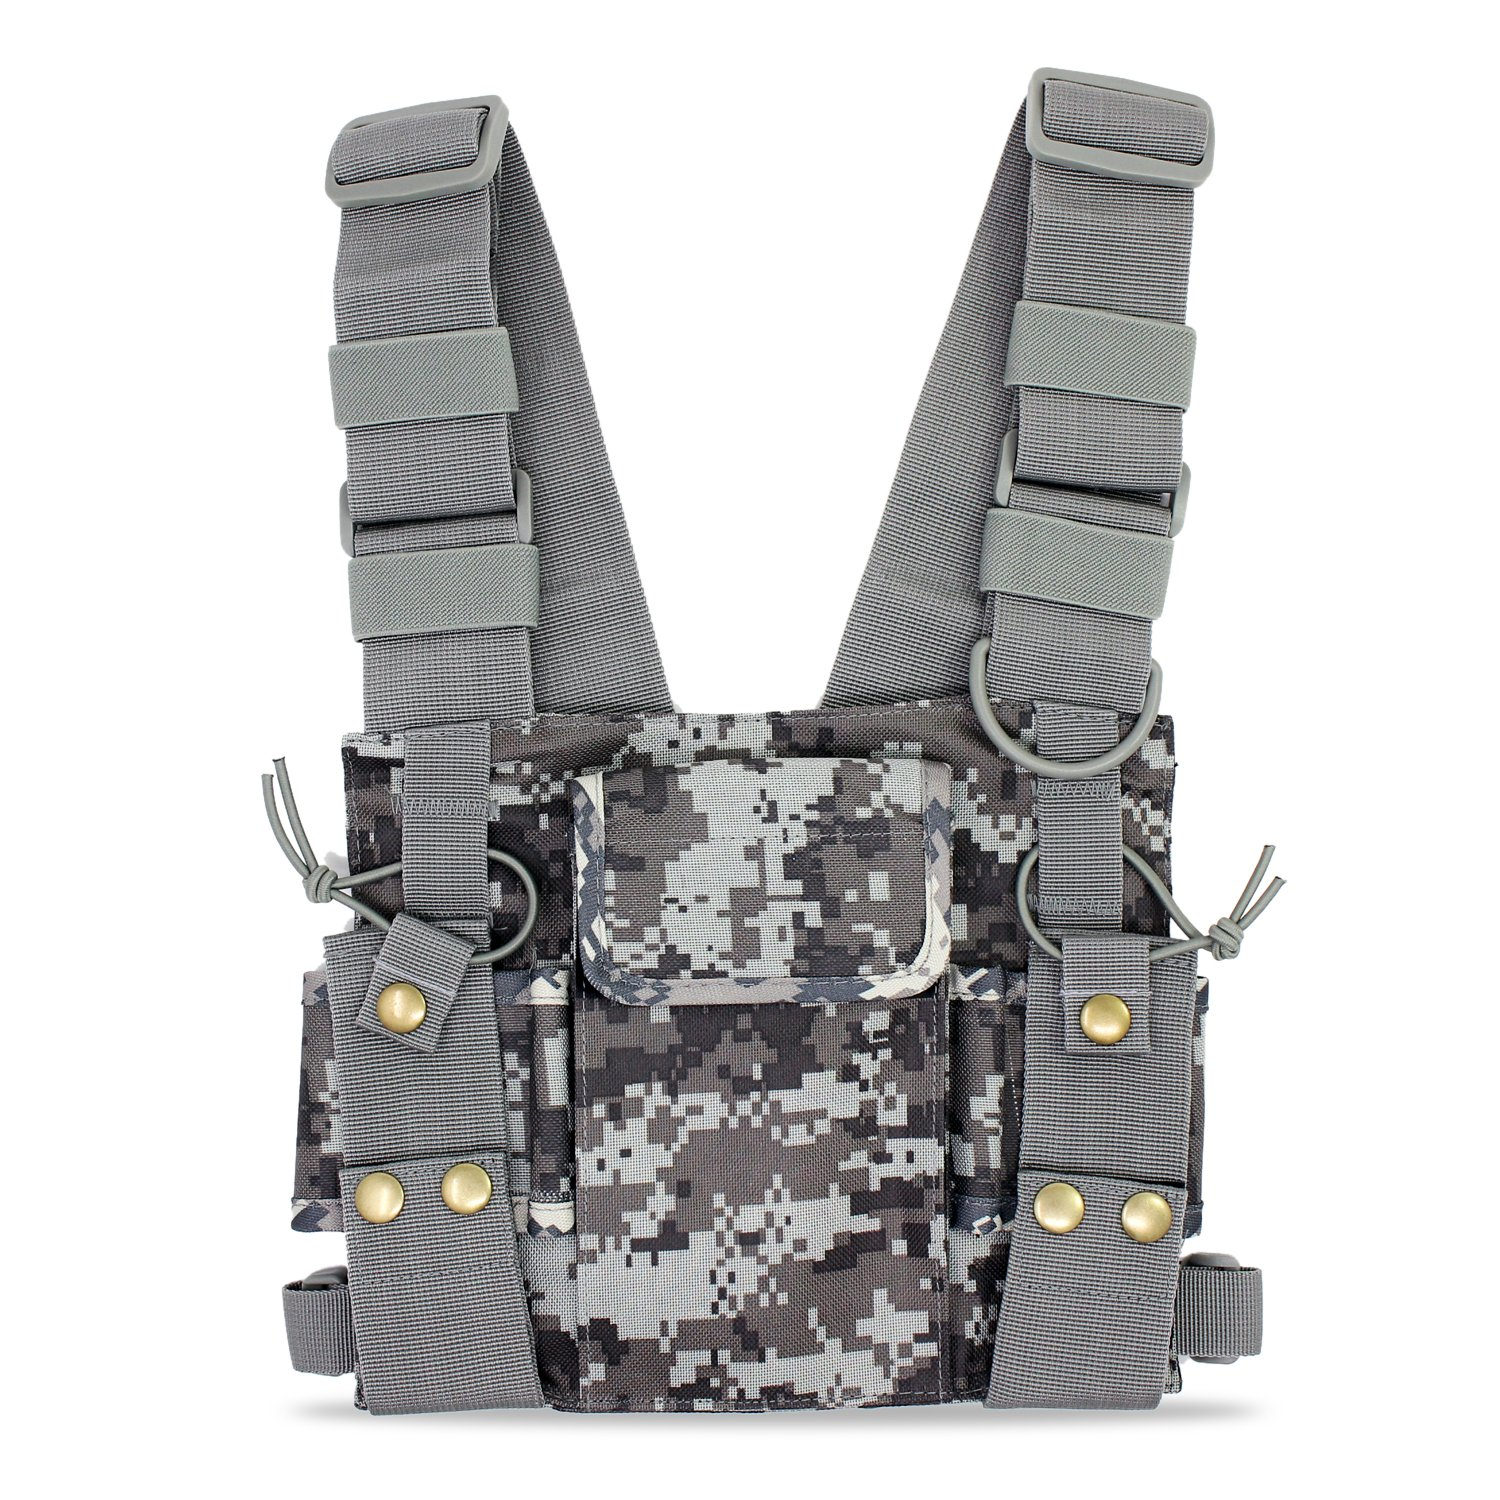 Abc Goodefg Radio Chest Harness Chest Front Pack Pouch Holster Vest Rig For Two Way Radio Walkie Talkie(Rescue Essentials) (Camouflage) by Abc Goodefg